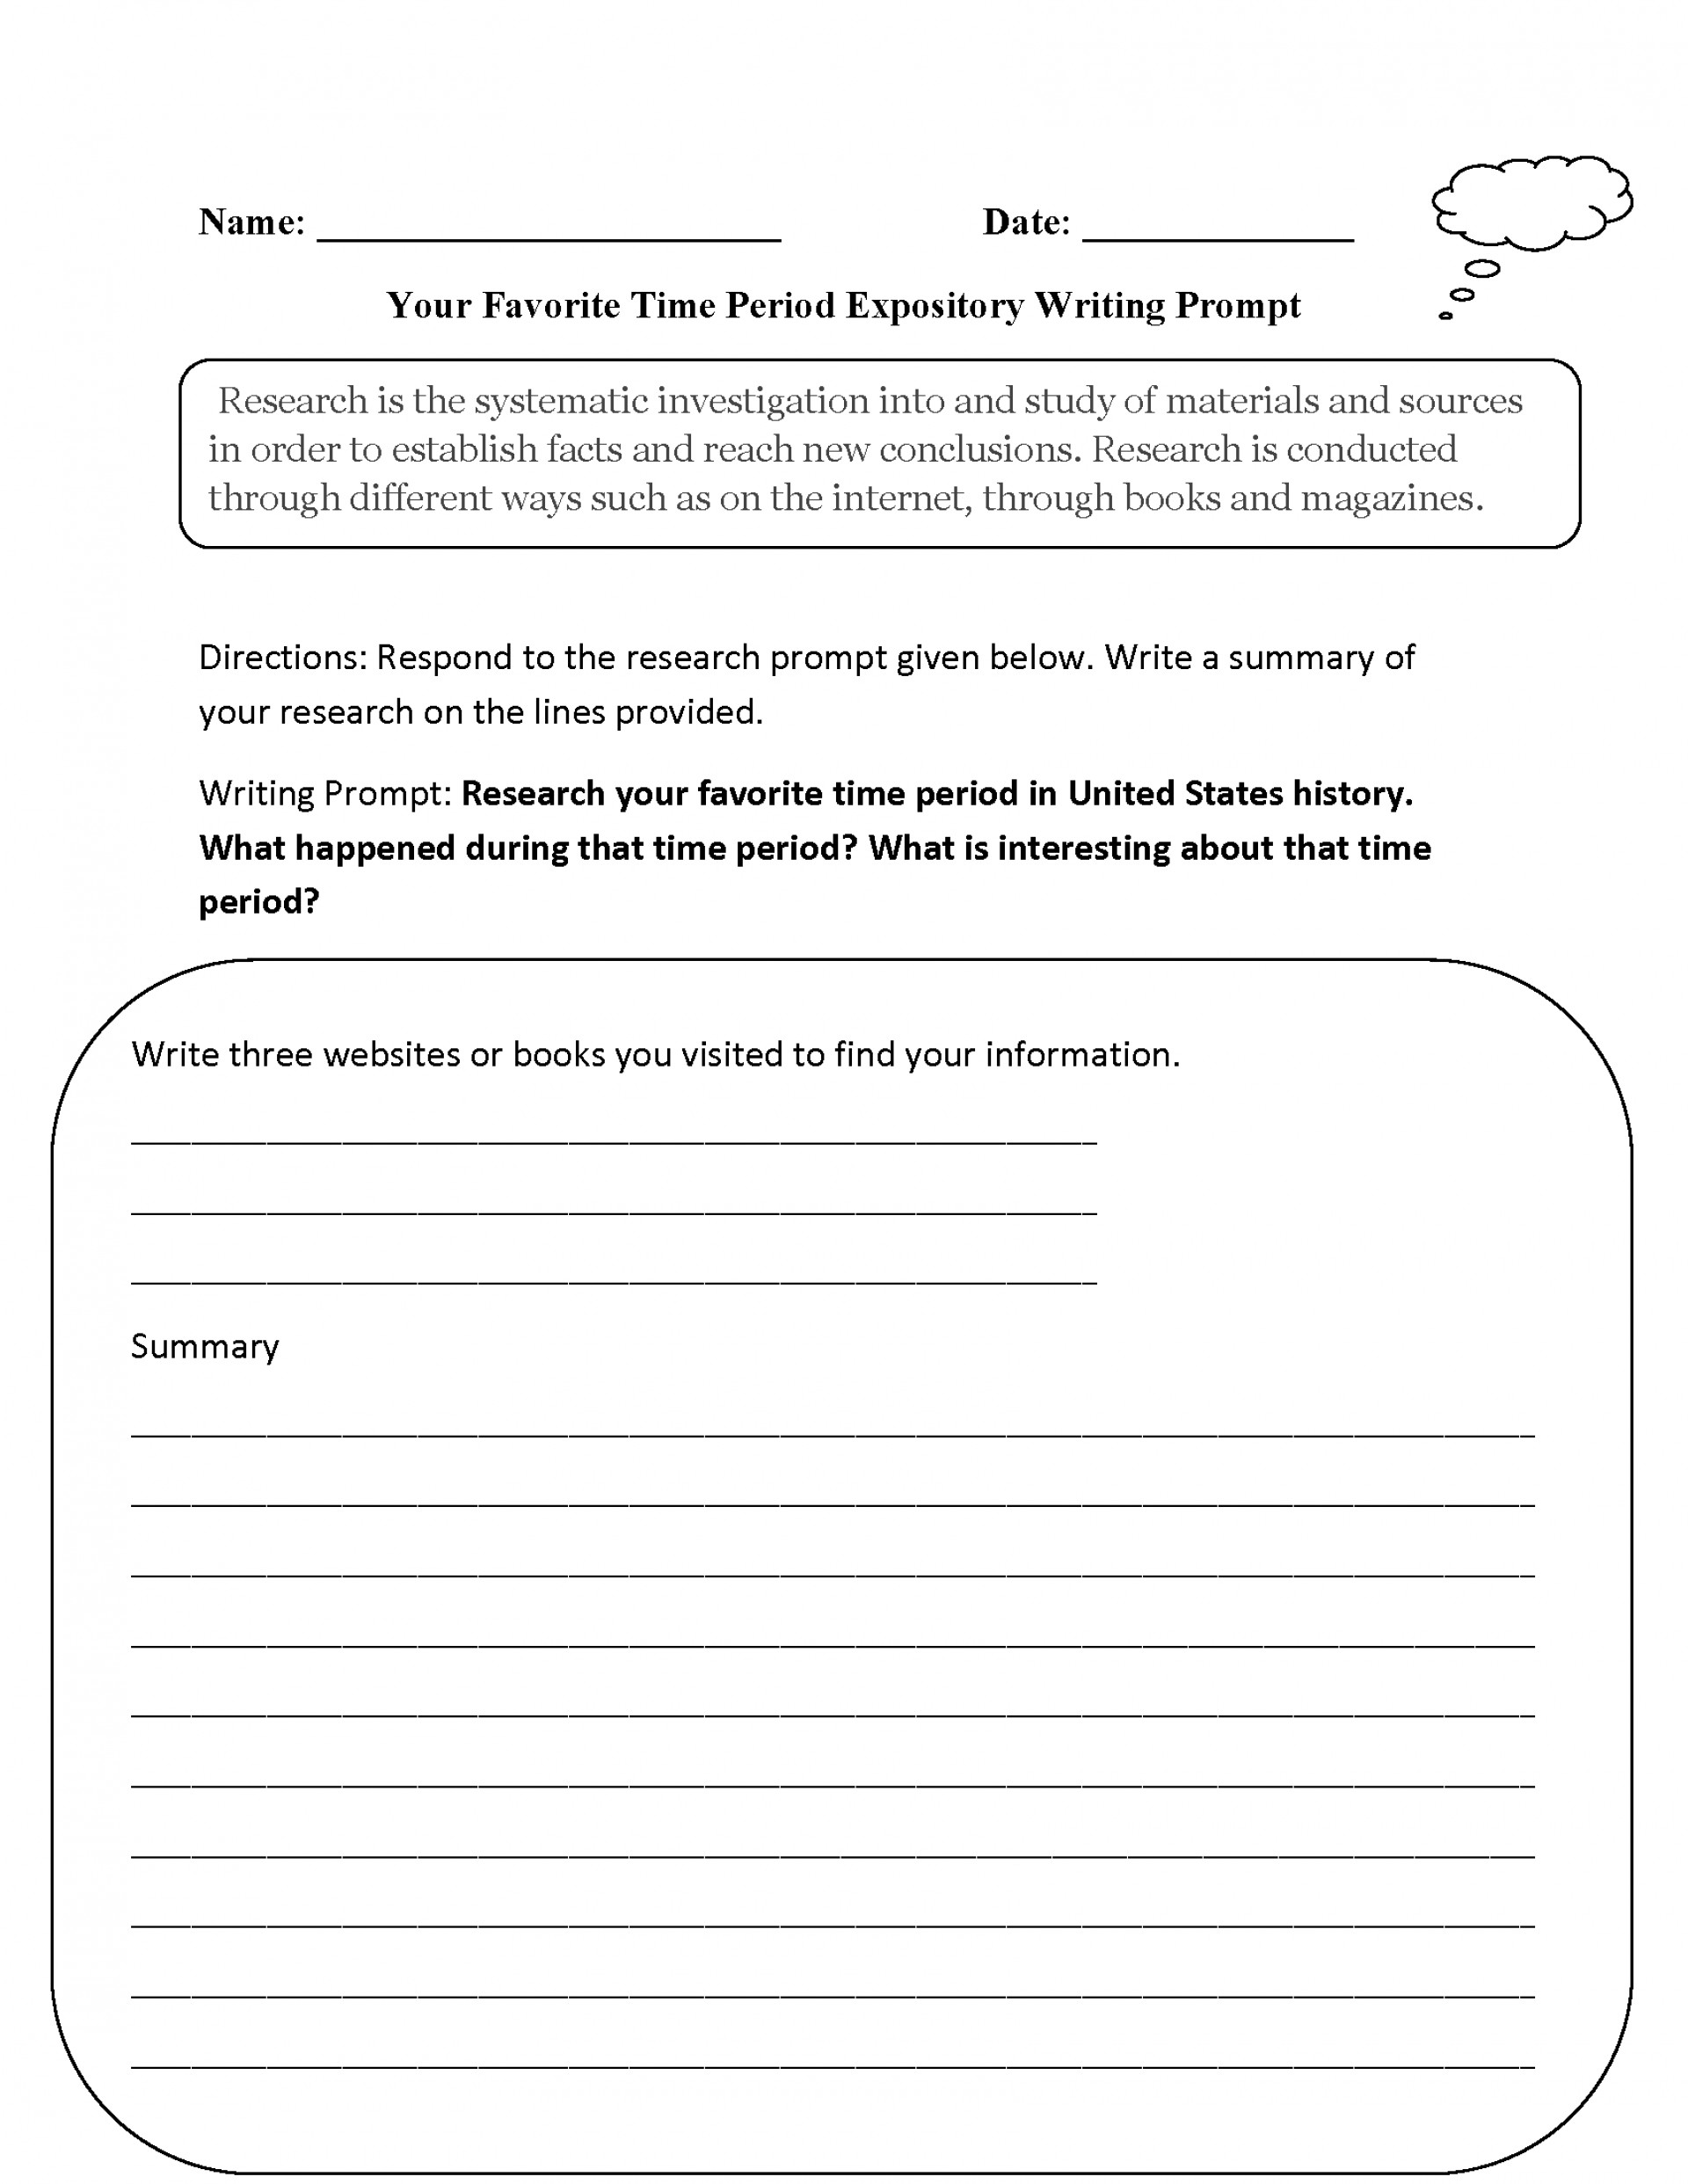 007 Essay Example Favorite Time Period Expository Writing Prompt Formidable Prompts Narrative For Middle School 5 Paragraph 5th Grade 1920